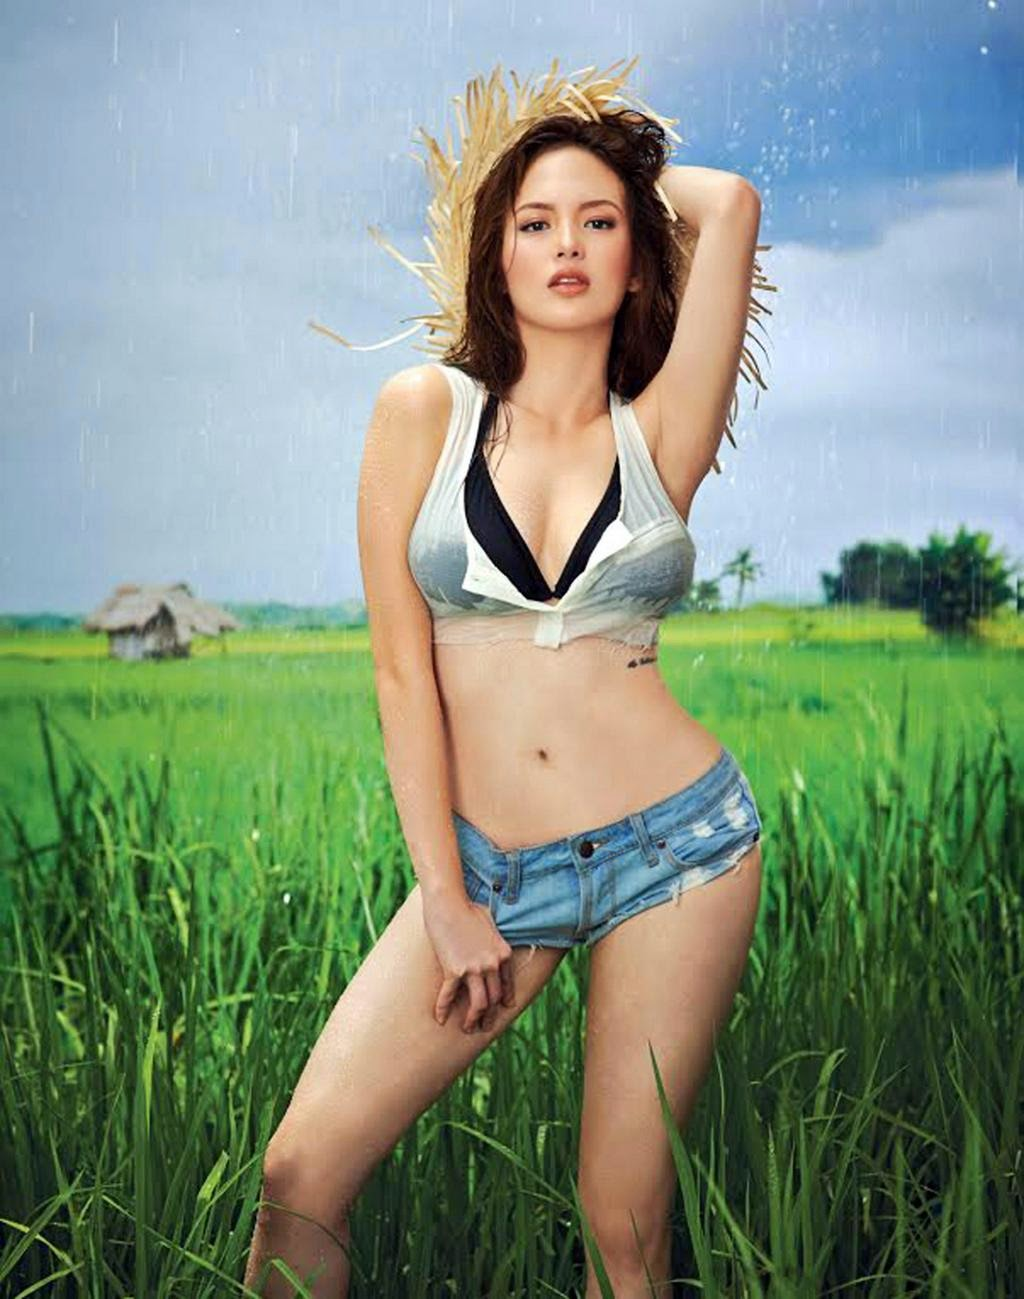 Swimsuit Ellen Adarna (b. 1988) nudes (76 photo) Porno, Instagram, in bikini